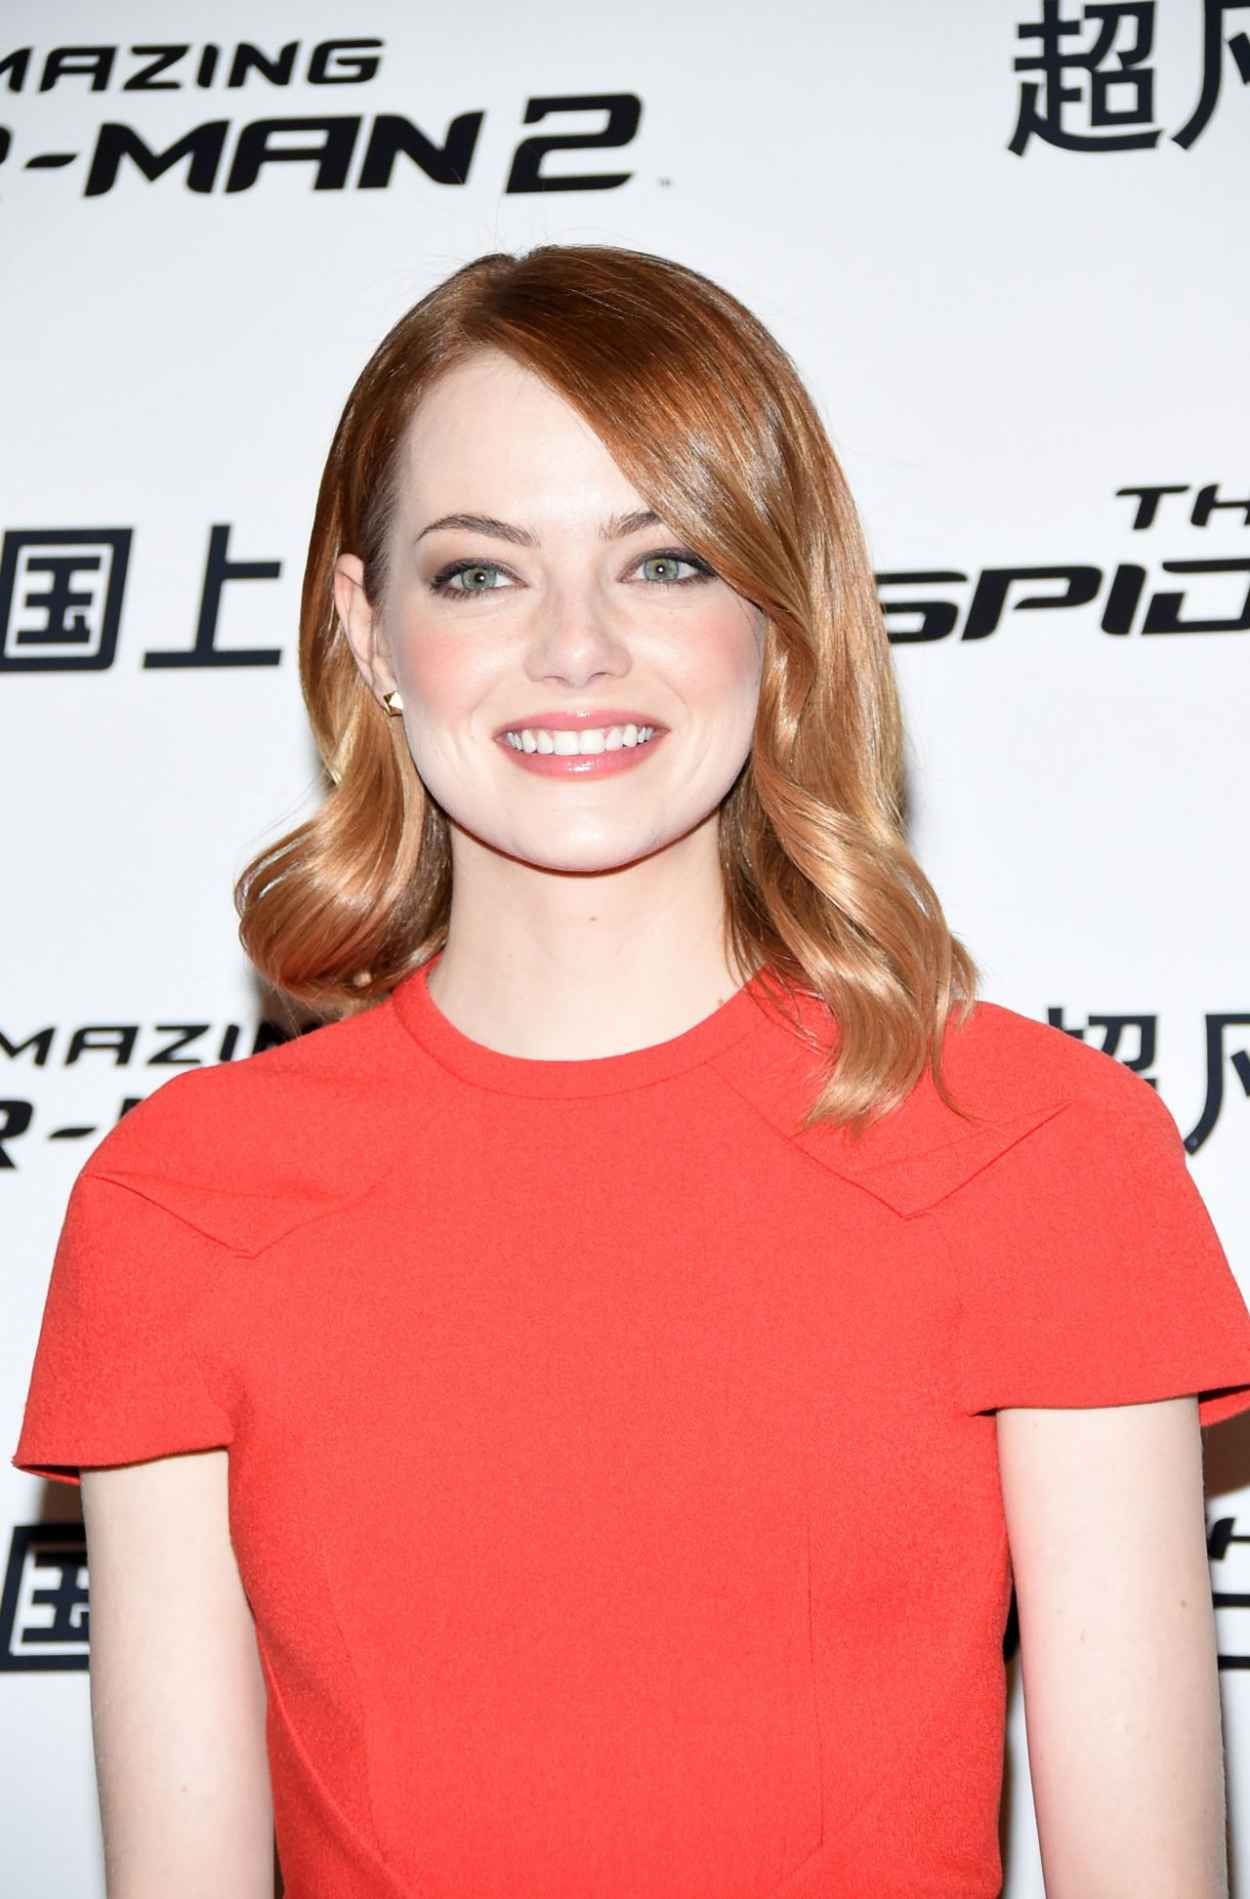 Emma Stone in China - Amazing Spider-Man 2 Photocall in Beijing-1